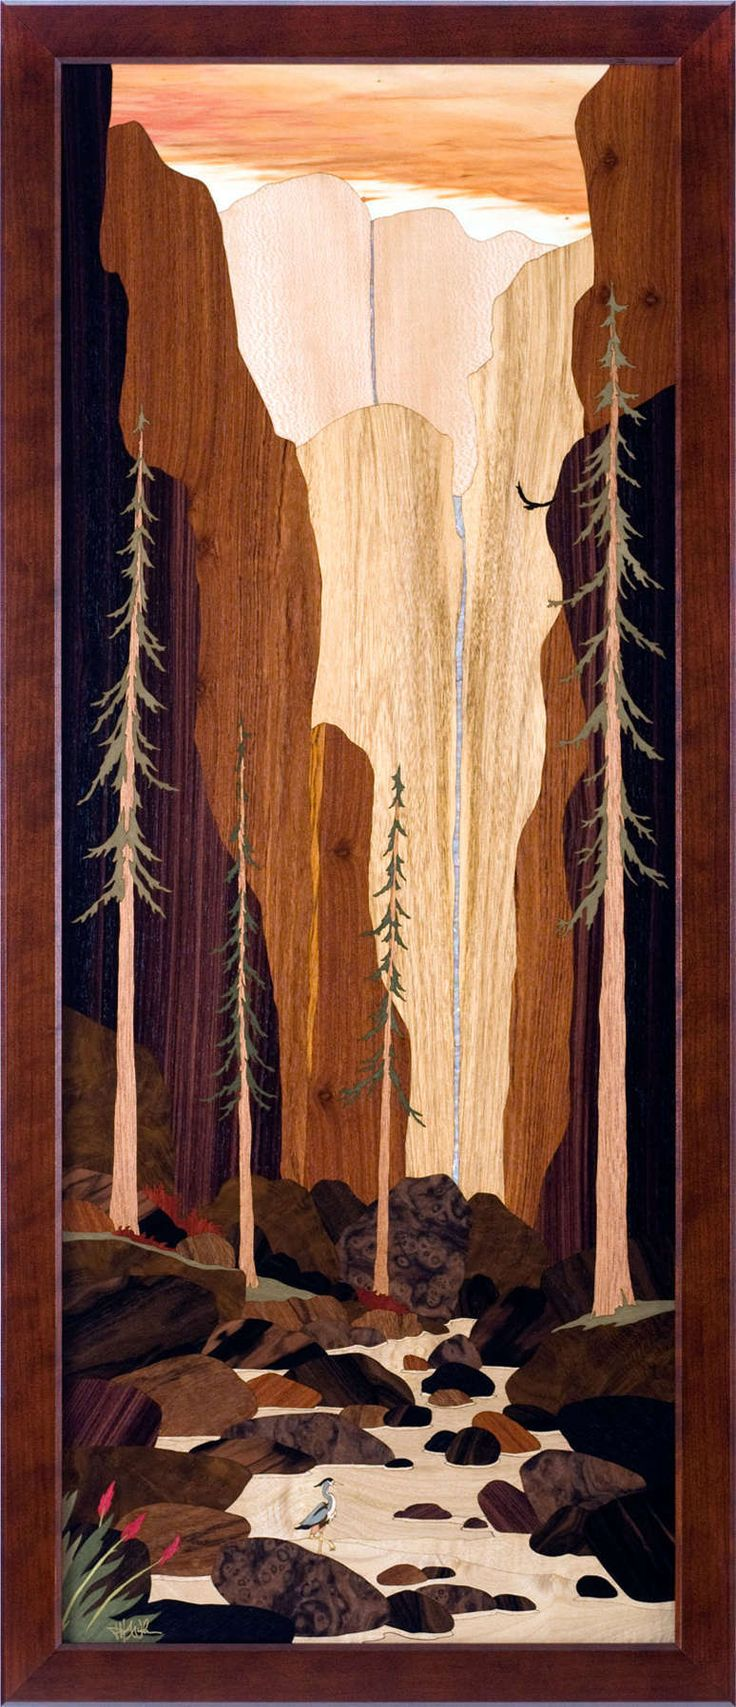 41 Legal Industry Predictions for 2016 Business of Law Blog Marquetry pictures hudson river inlay